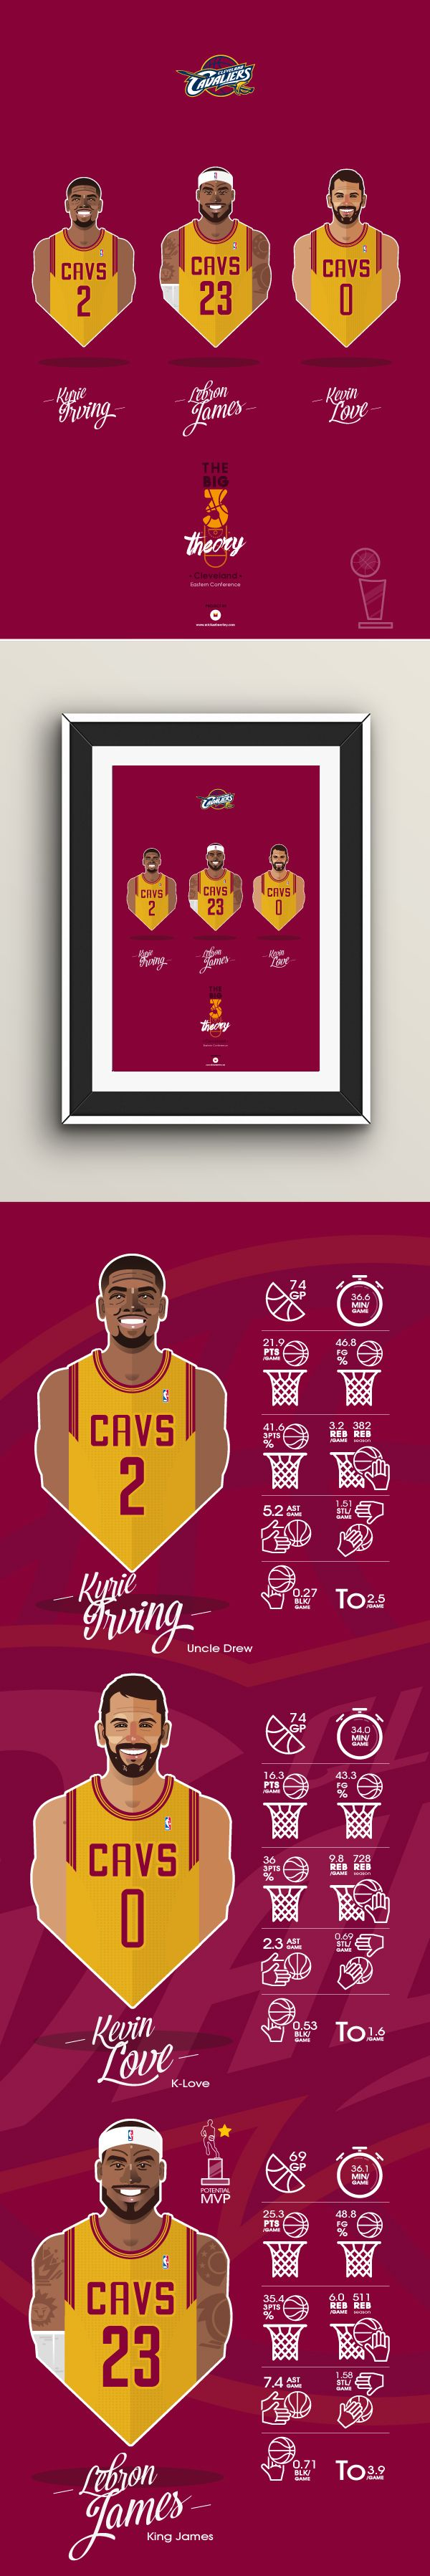 #NBA #players #CAVS #Cavaliers #Cleveland #vector face Big Men Big 3 #playoffs sport basketball illustration #Lebron #irving #Love